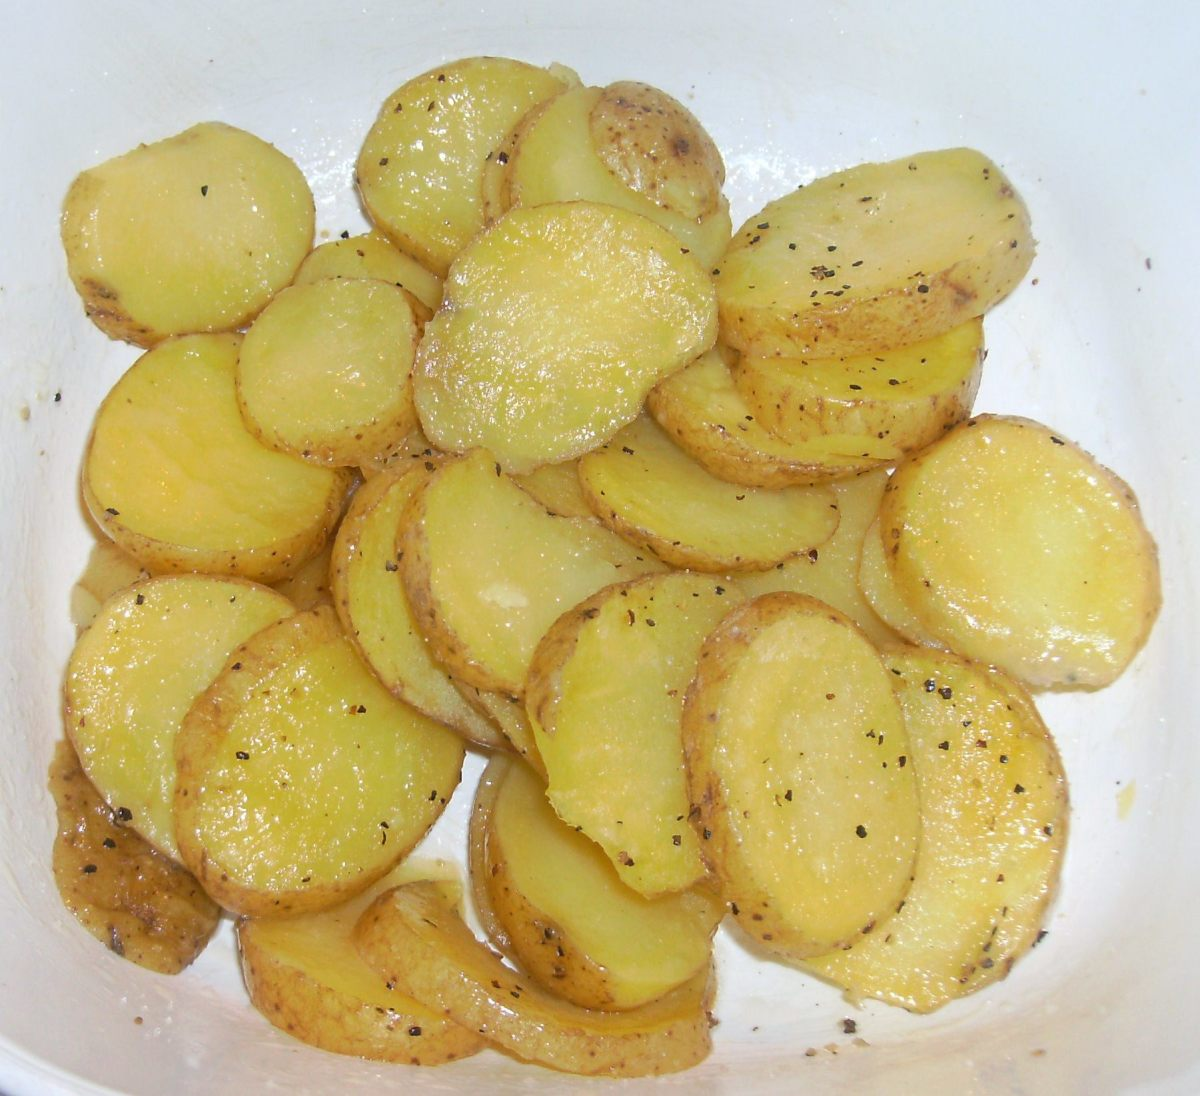 These are small Yukon Gold potatoes.